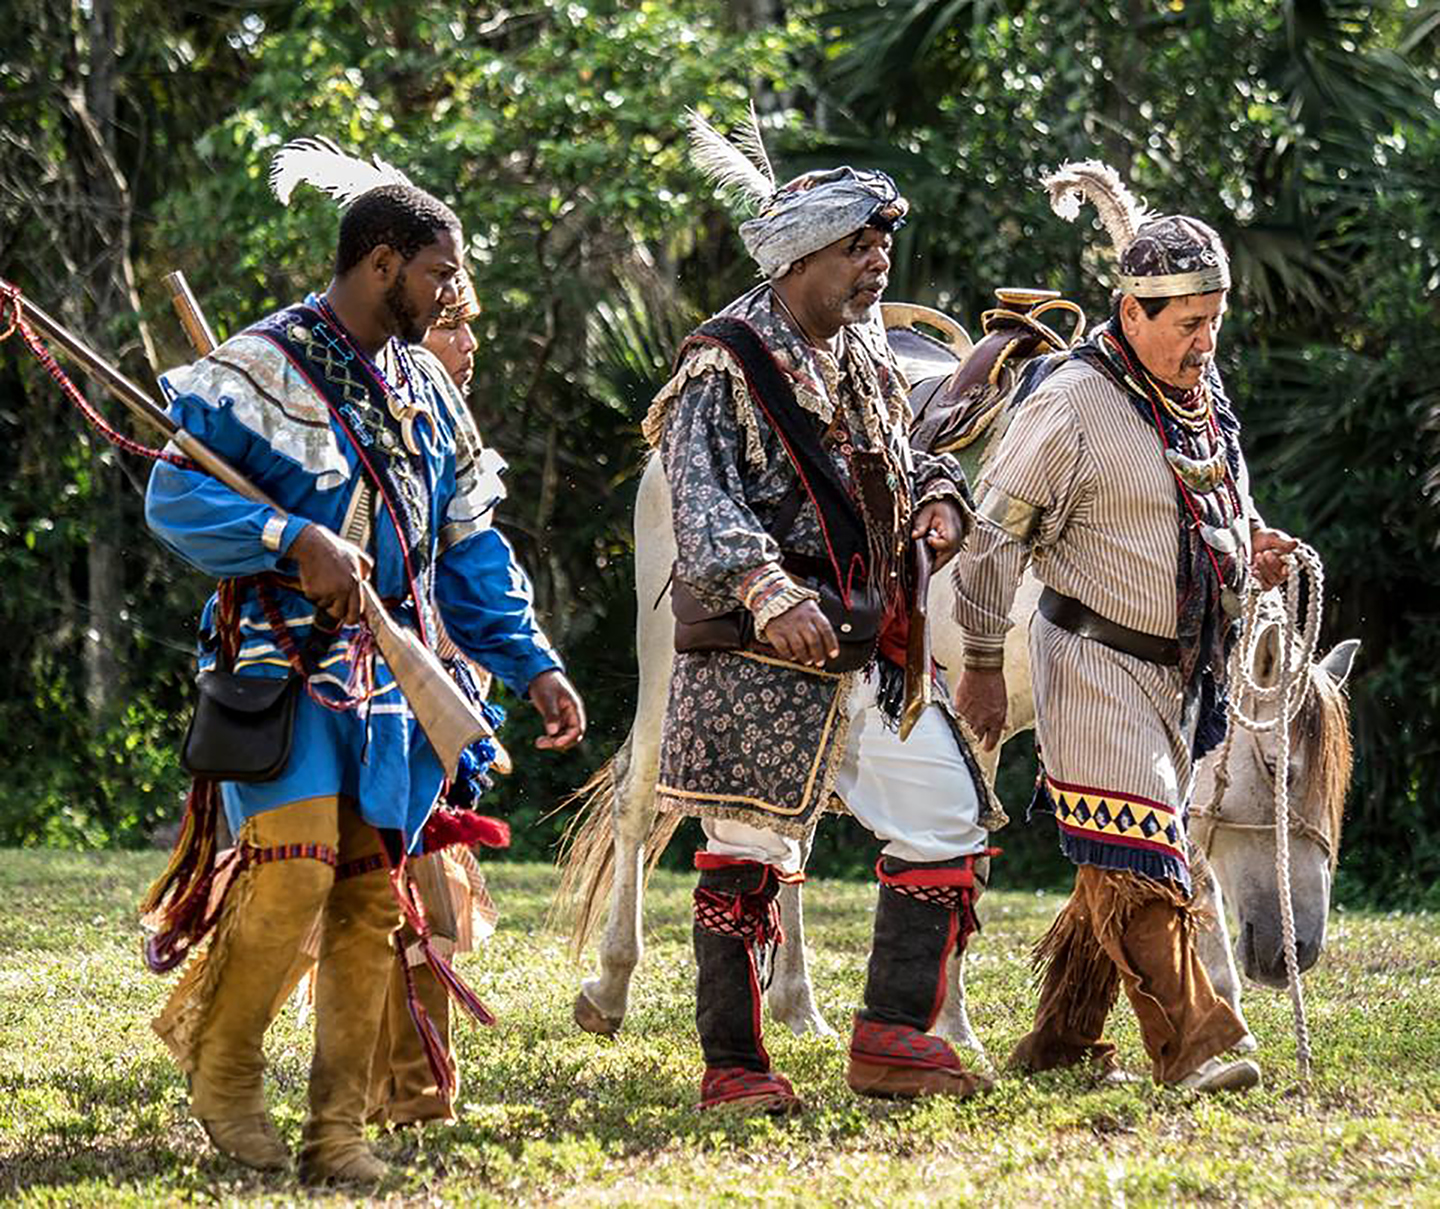 Moses Jumper Jr., far right, joins actor Ralph Smith, center, and other cast members during the filming of the documentary 'Suwannee Warrior' on the Big Cypress Reservation. (Claire Powell photo)